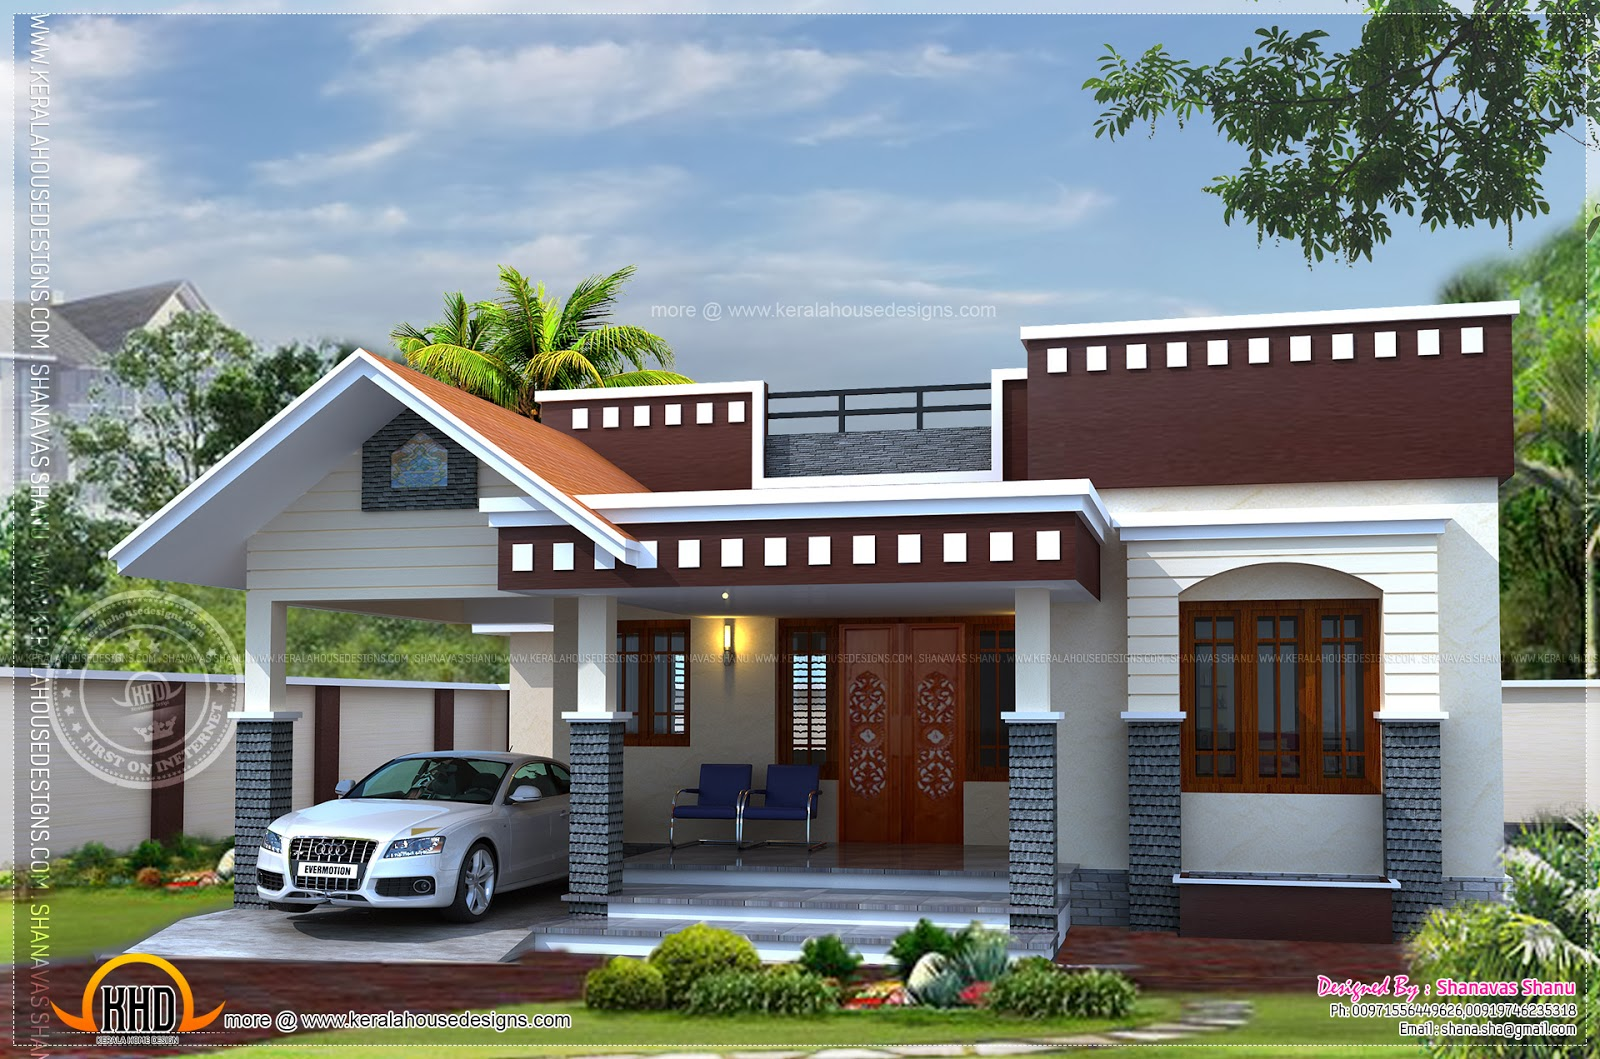 Home plan of small house kerala home design and floor plans for House plans with photos